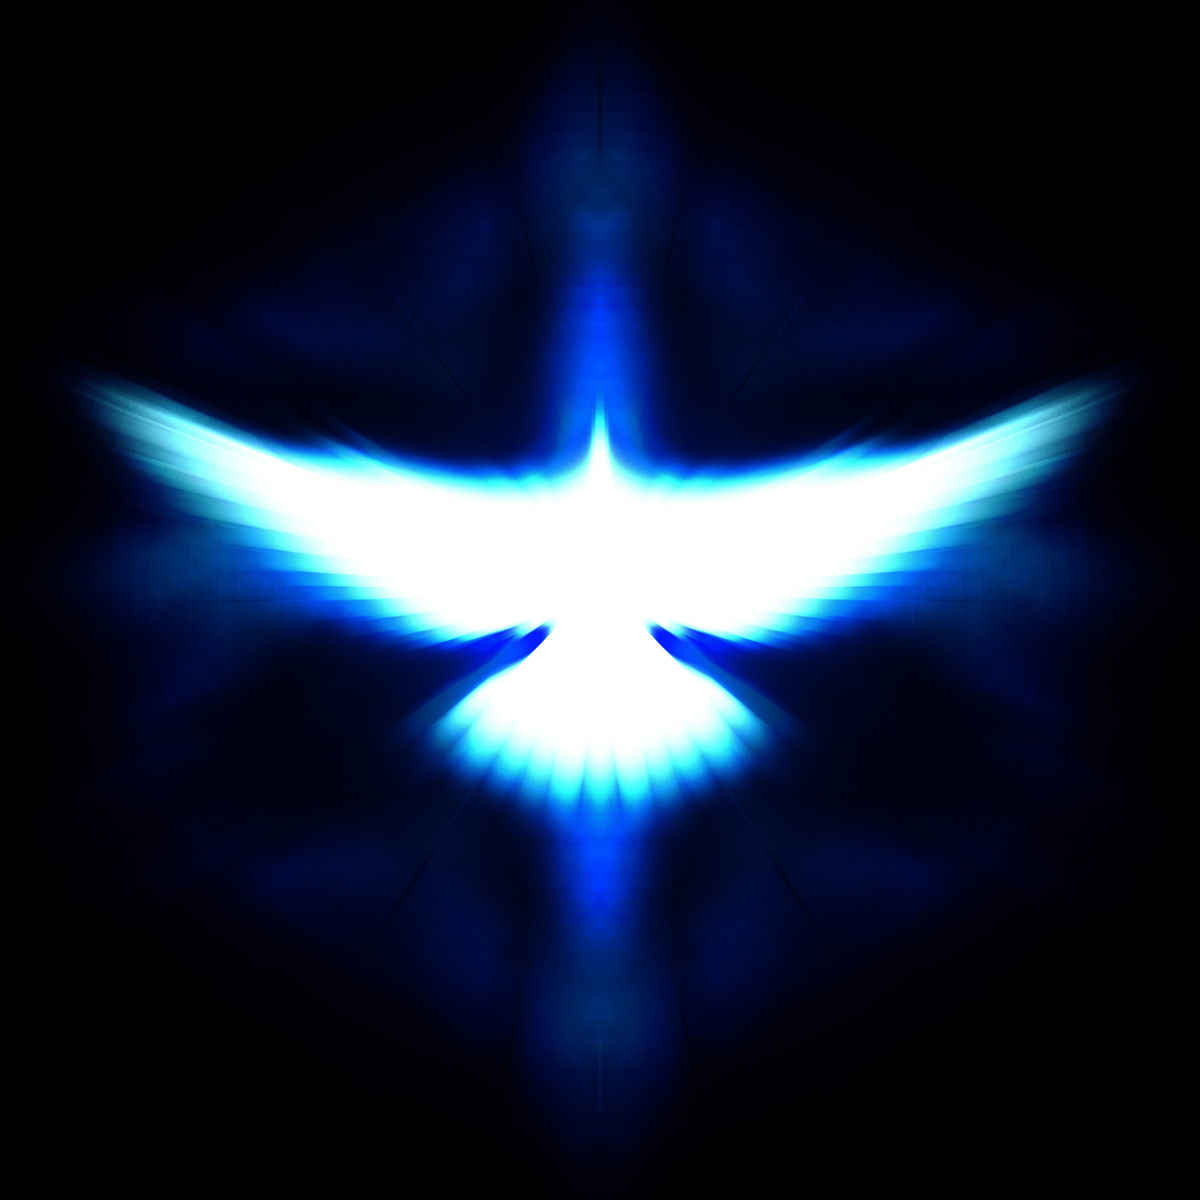 Image result for ascension and pentecost